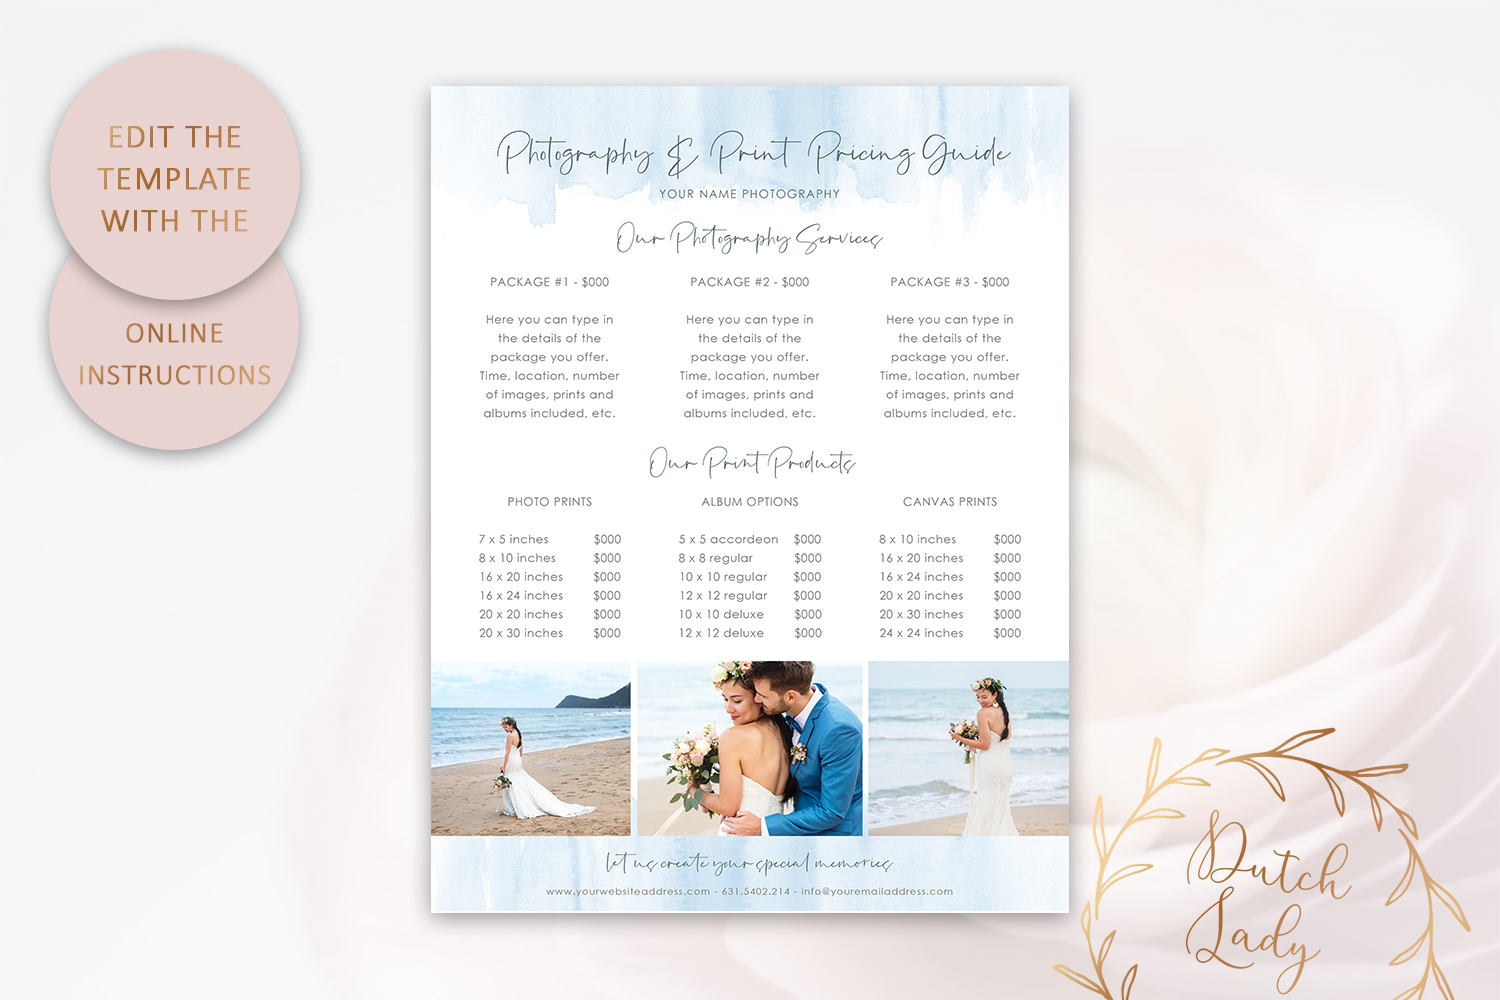 PSD Photography Pricing Guide Template Design #8 example image 5